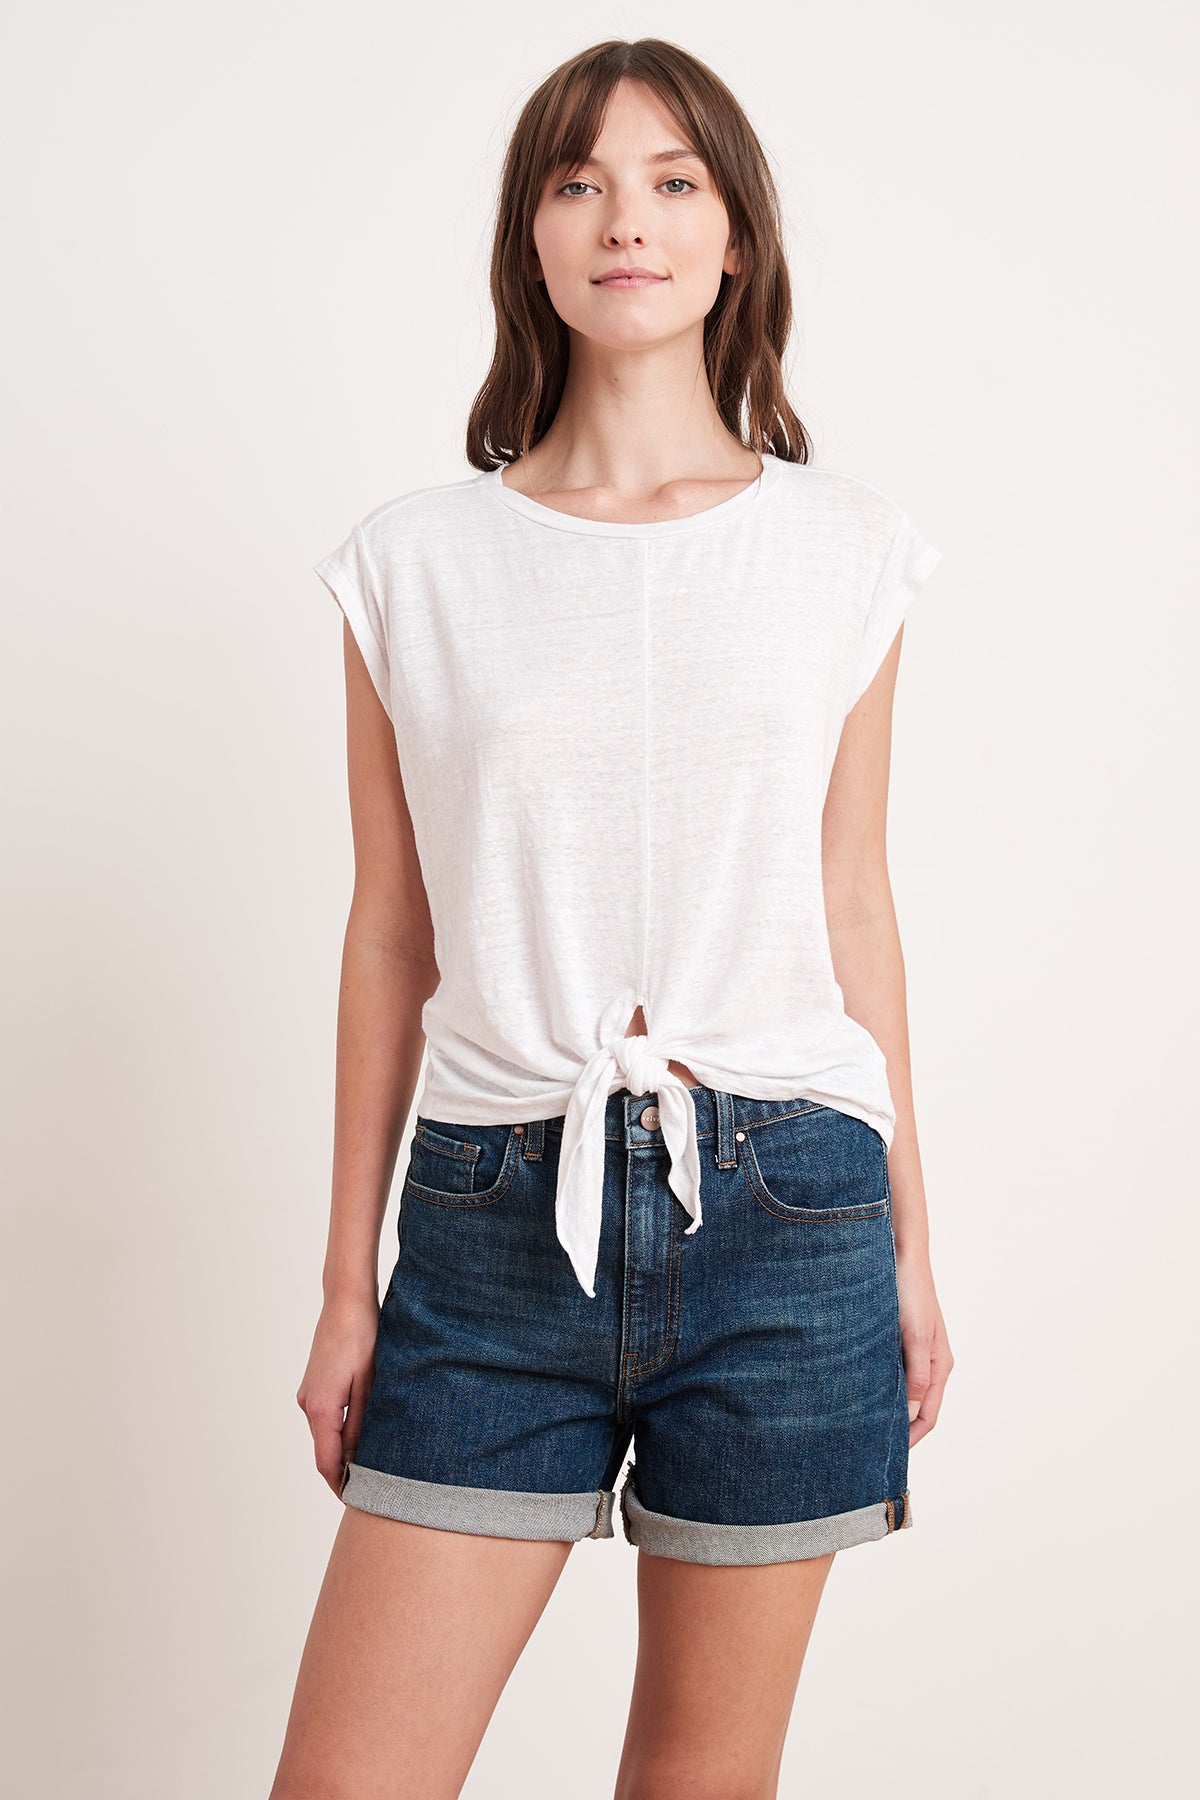 ABBA KNOT FRONT TEE